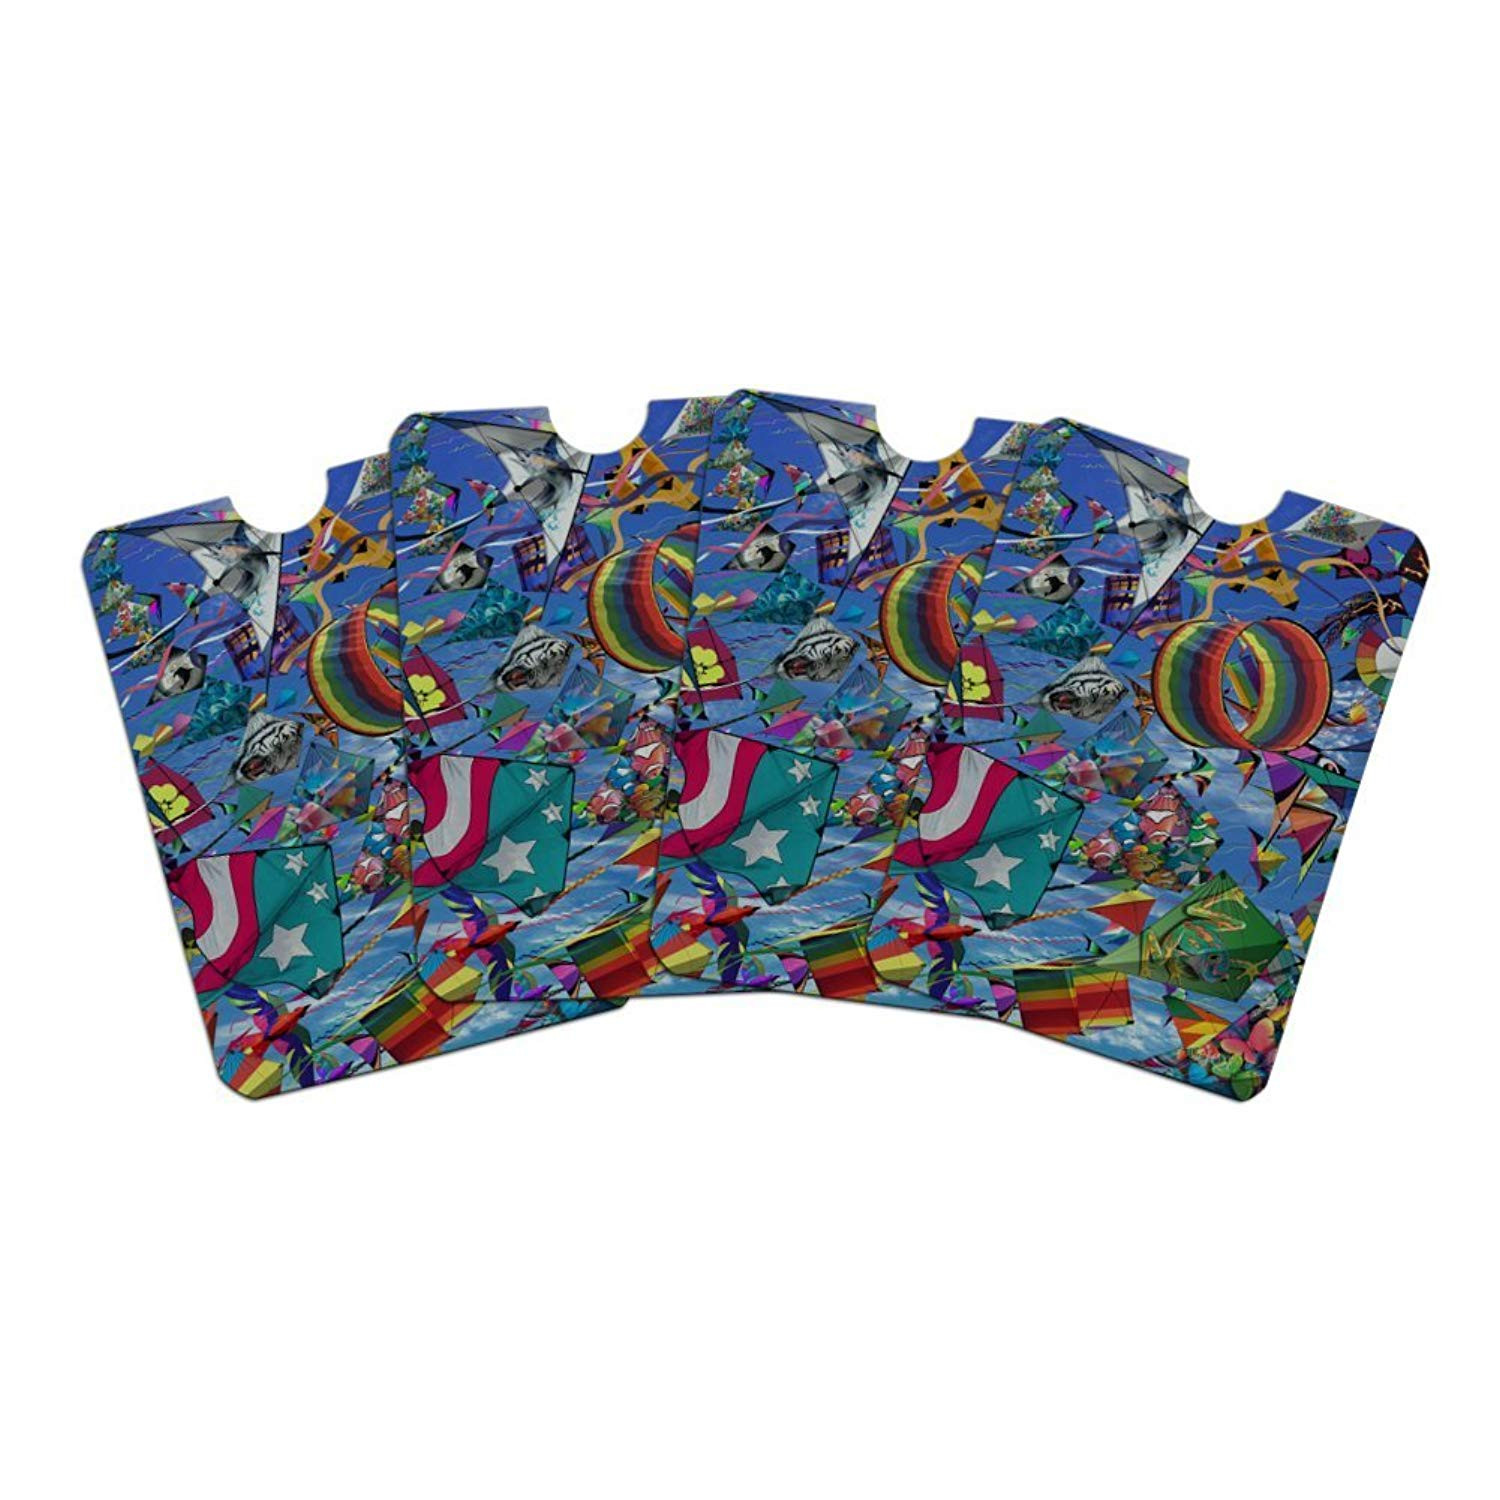 Kites Flying Riding The Wind Credit Card RFID Blocker Holder Protector Wallet Purse Sleeves Set of 4